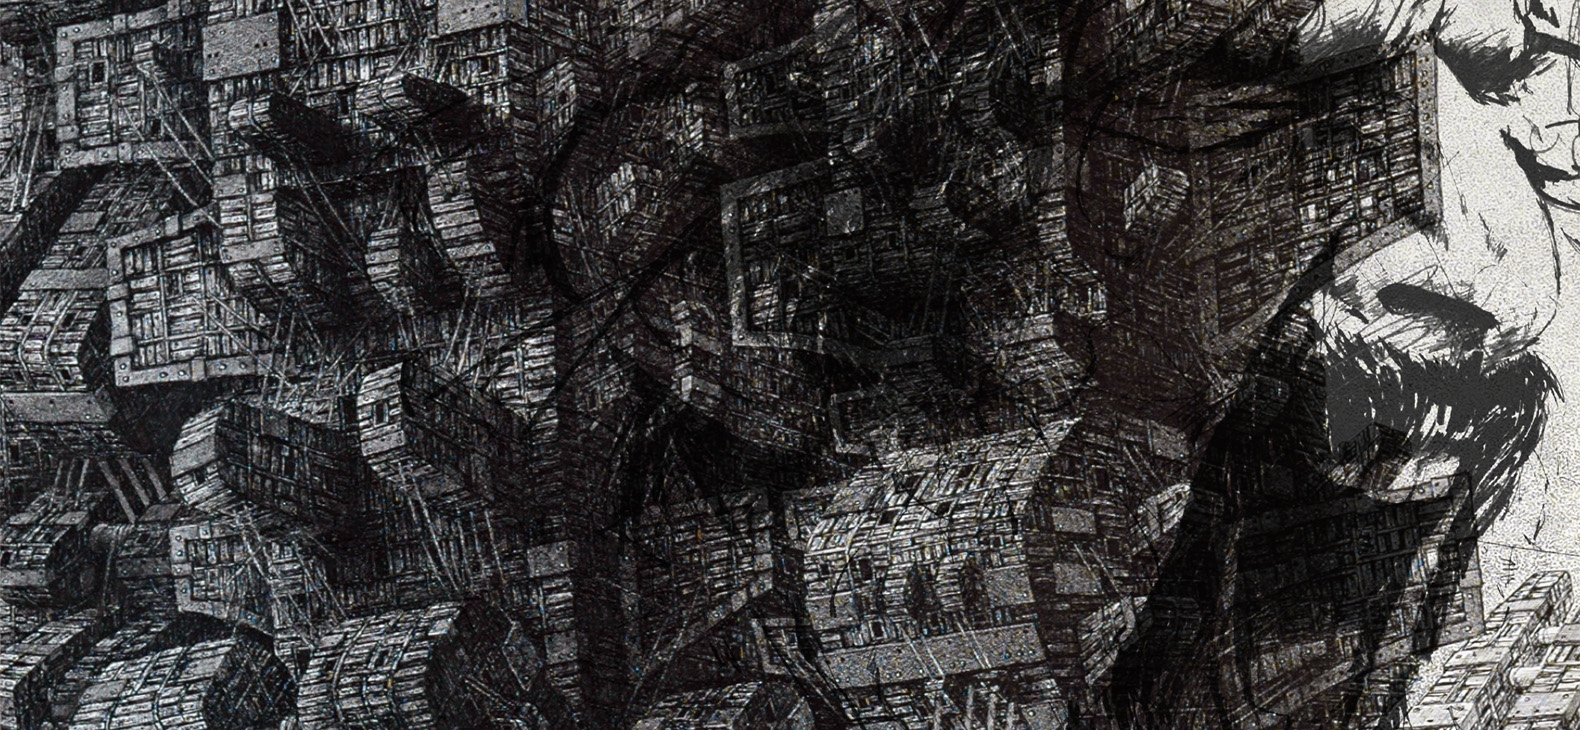 Detail from a drawing by Paweł Warchoł